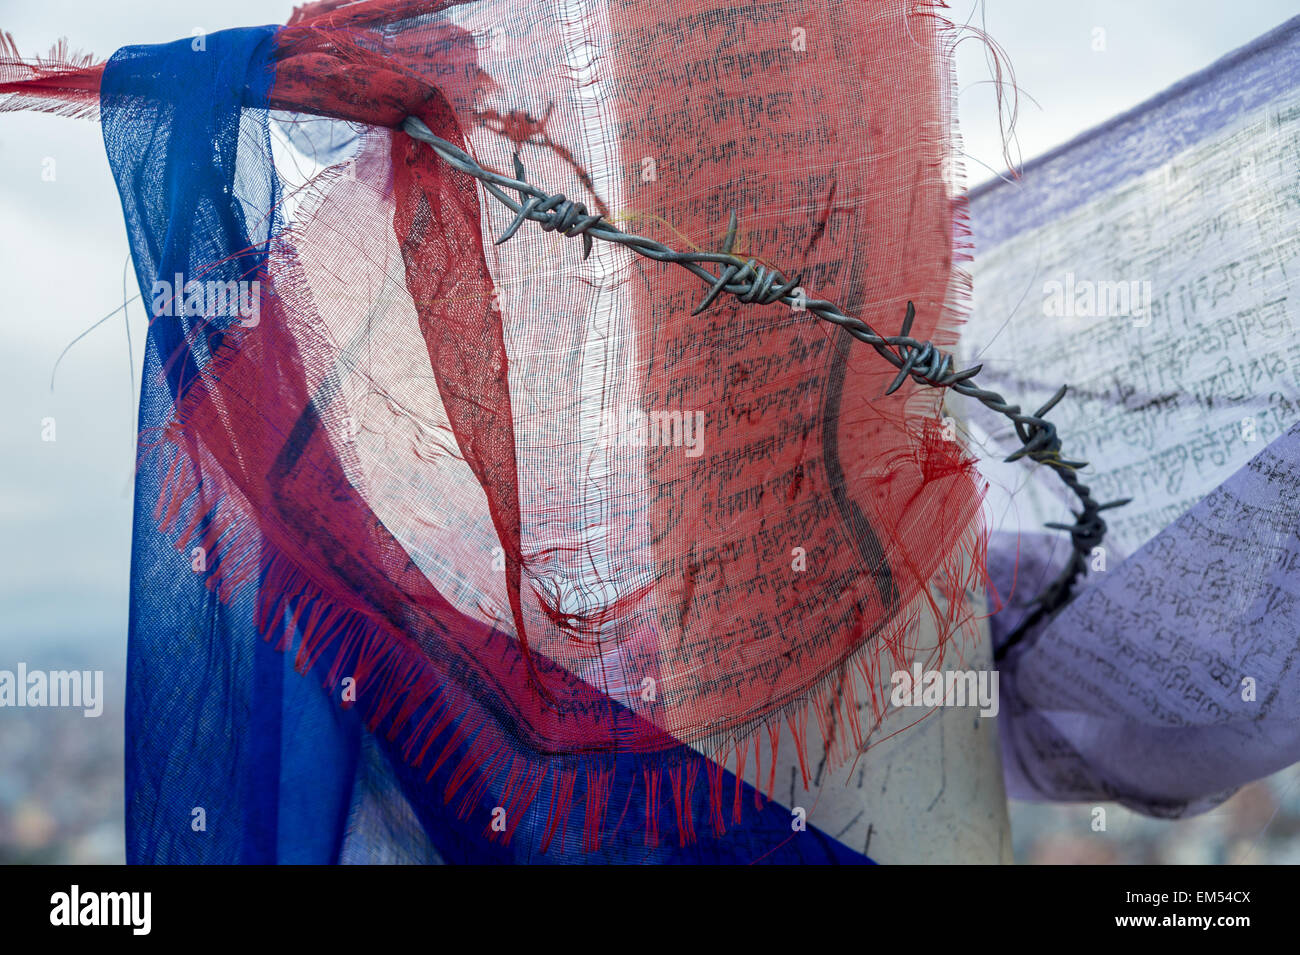 Close-up of prayer flags and barb wires. Perfect image to symbolise Tibet oppression. - Stock Image